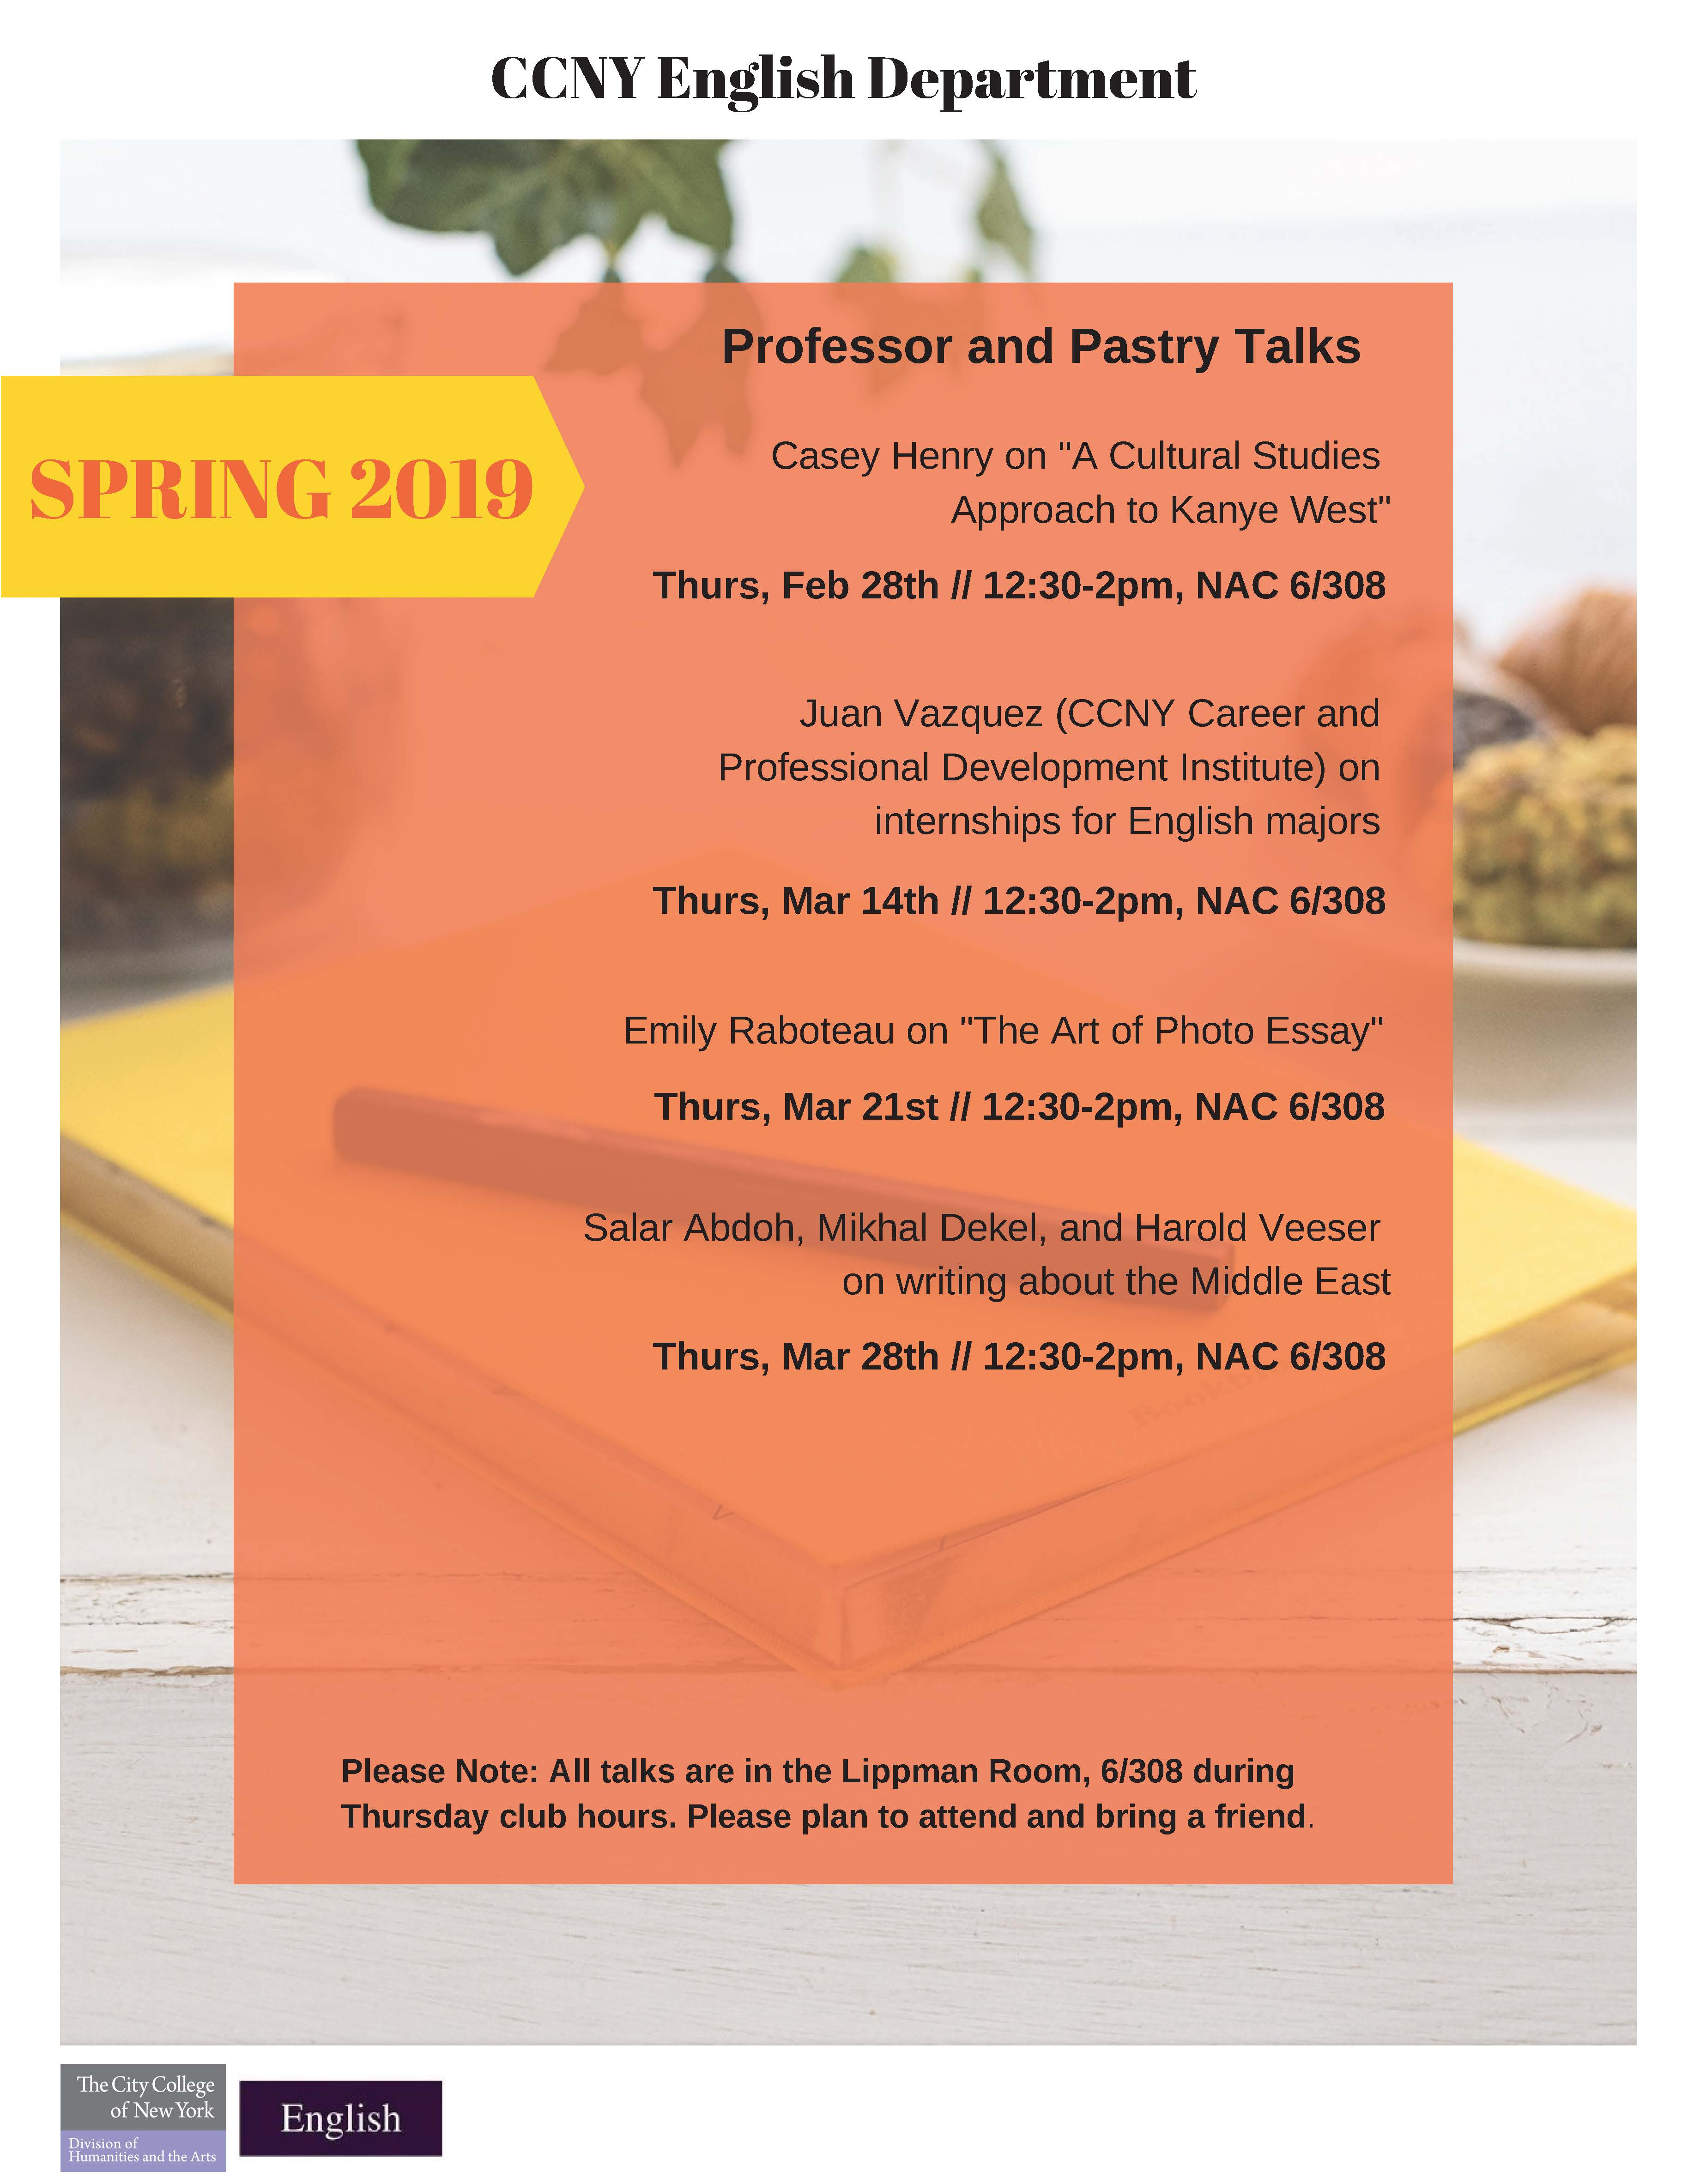 Spring 2019 CCNY English Events